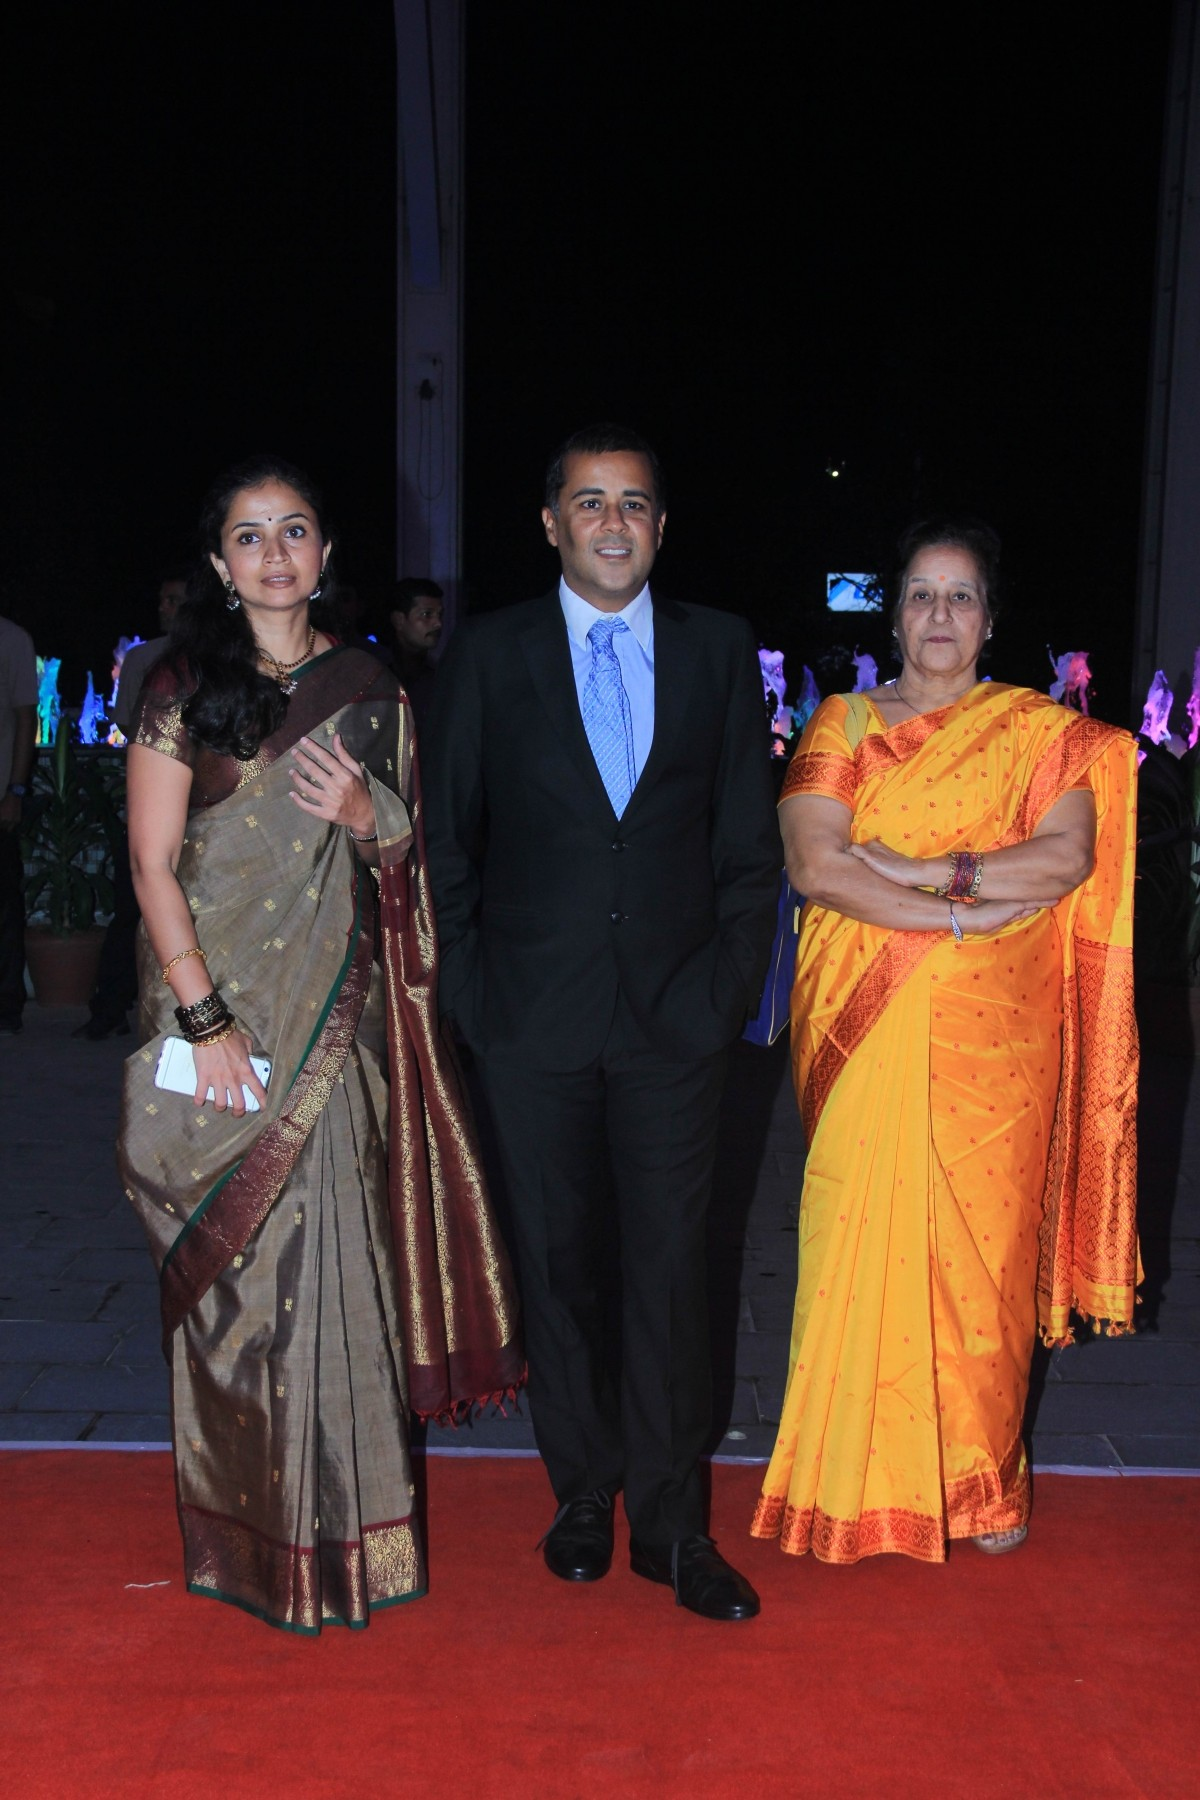 Chetan Bhagat and wife arrives for Kussh Sinha's reception party